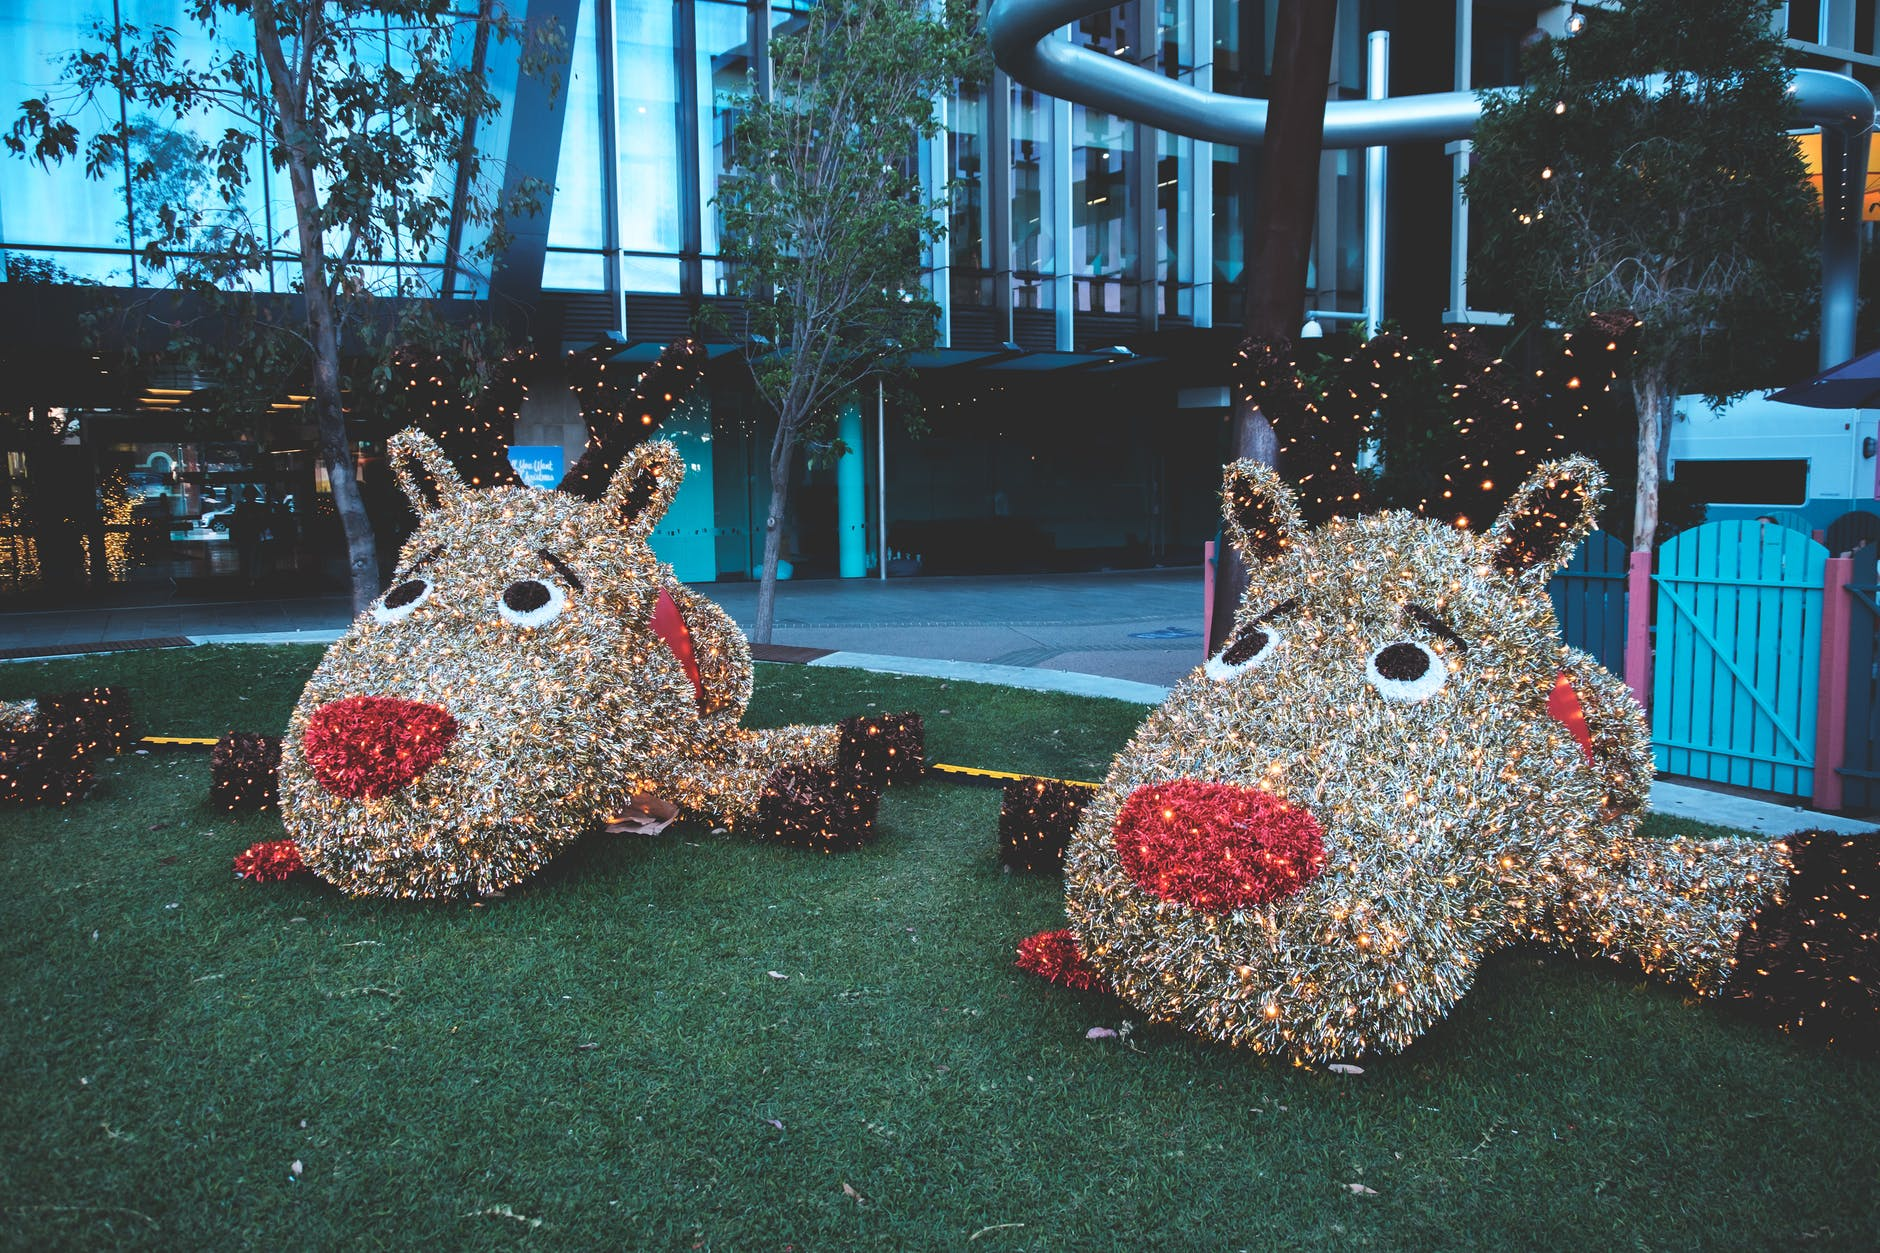 giant funny figures of animals placed on green lawn